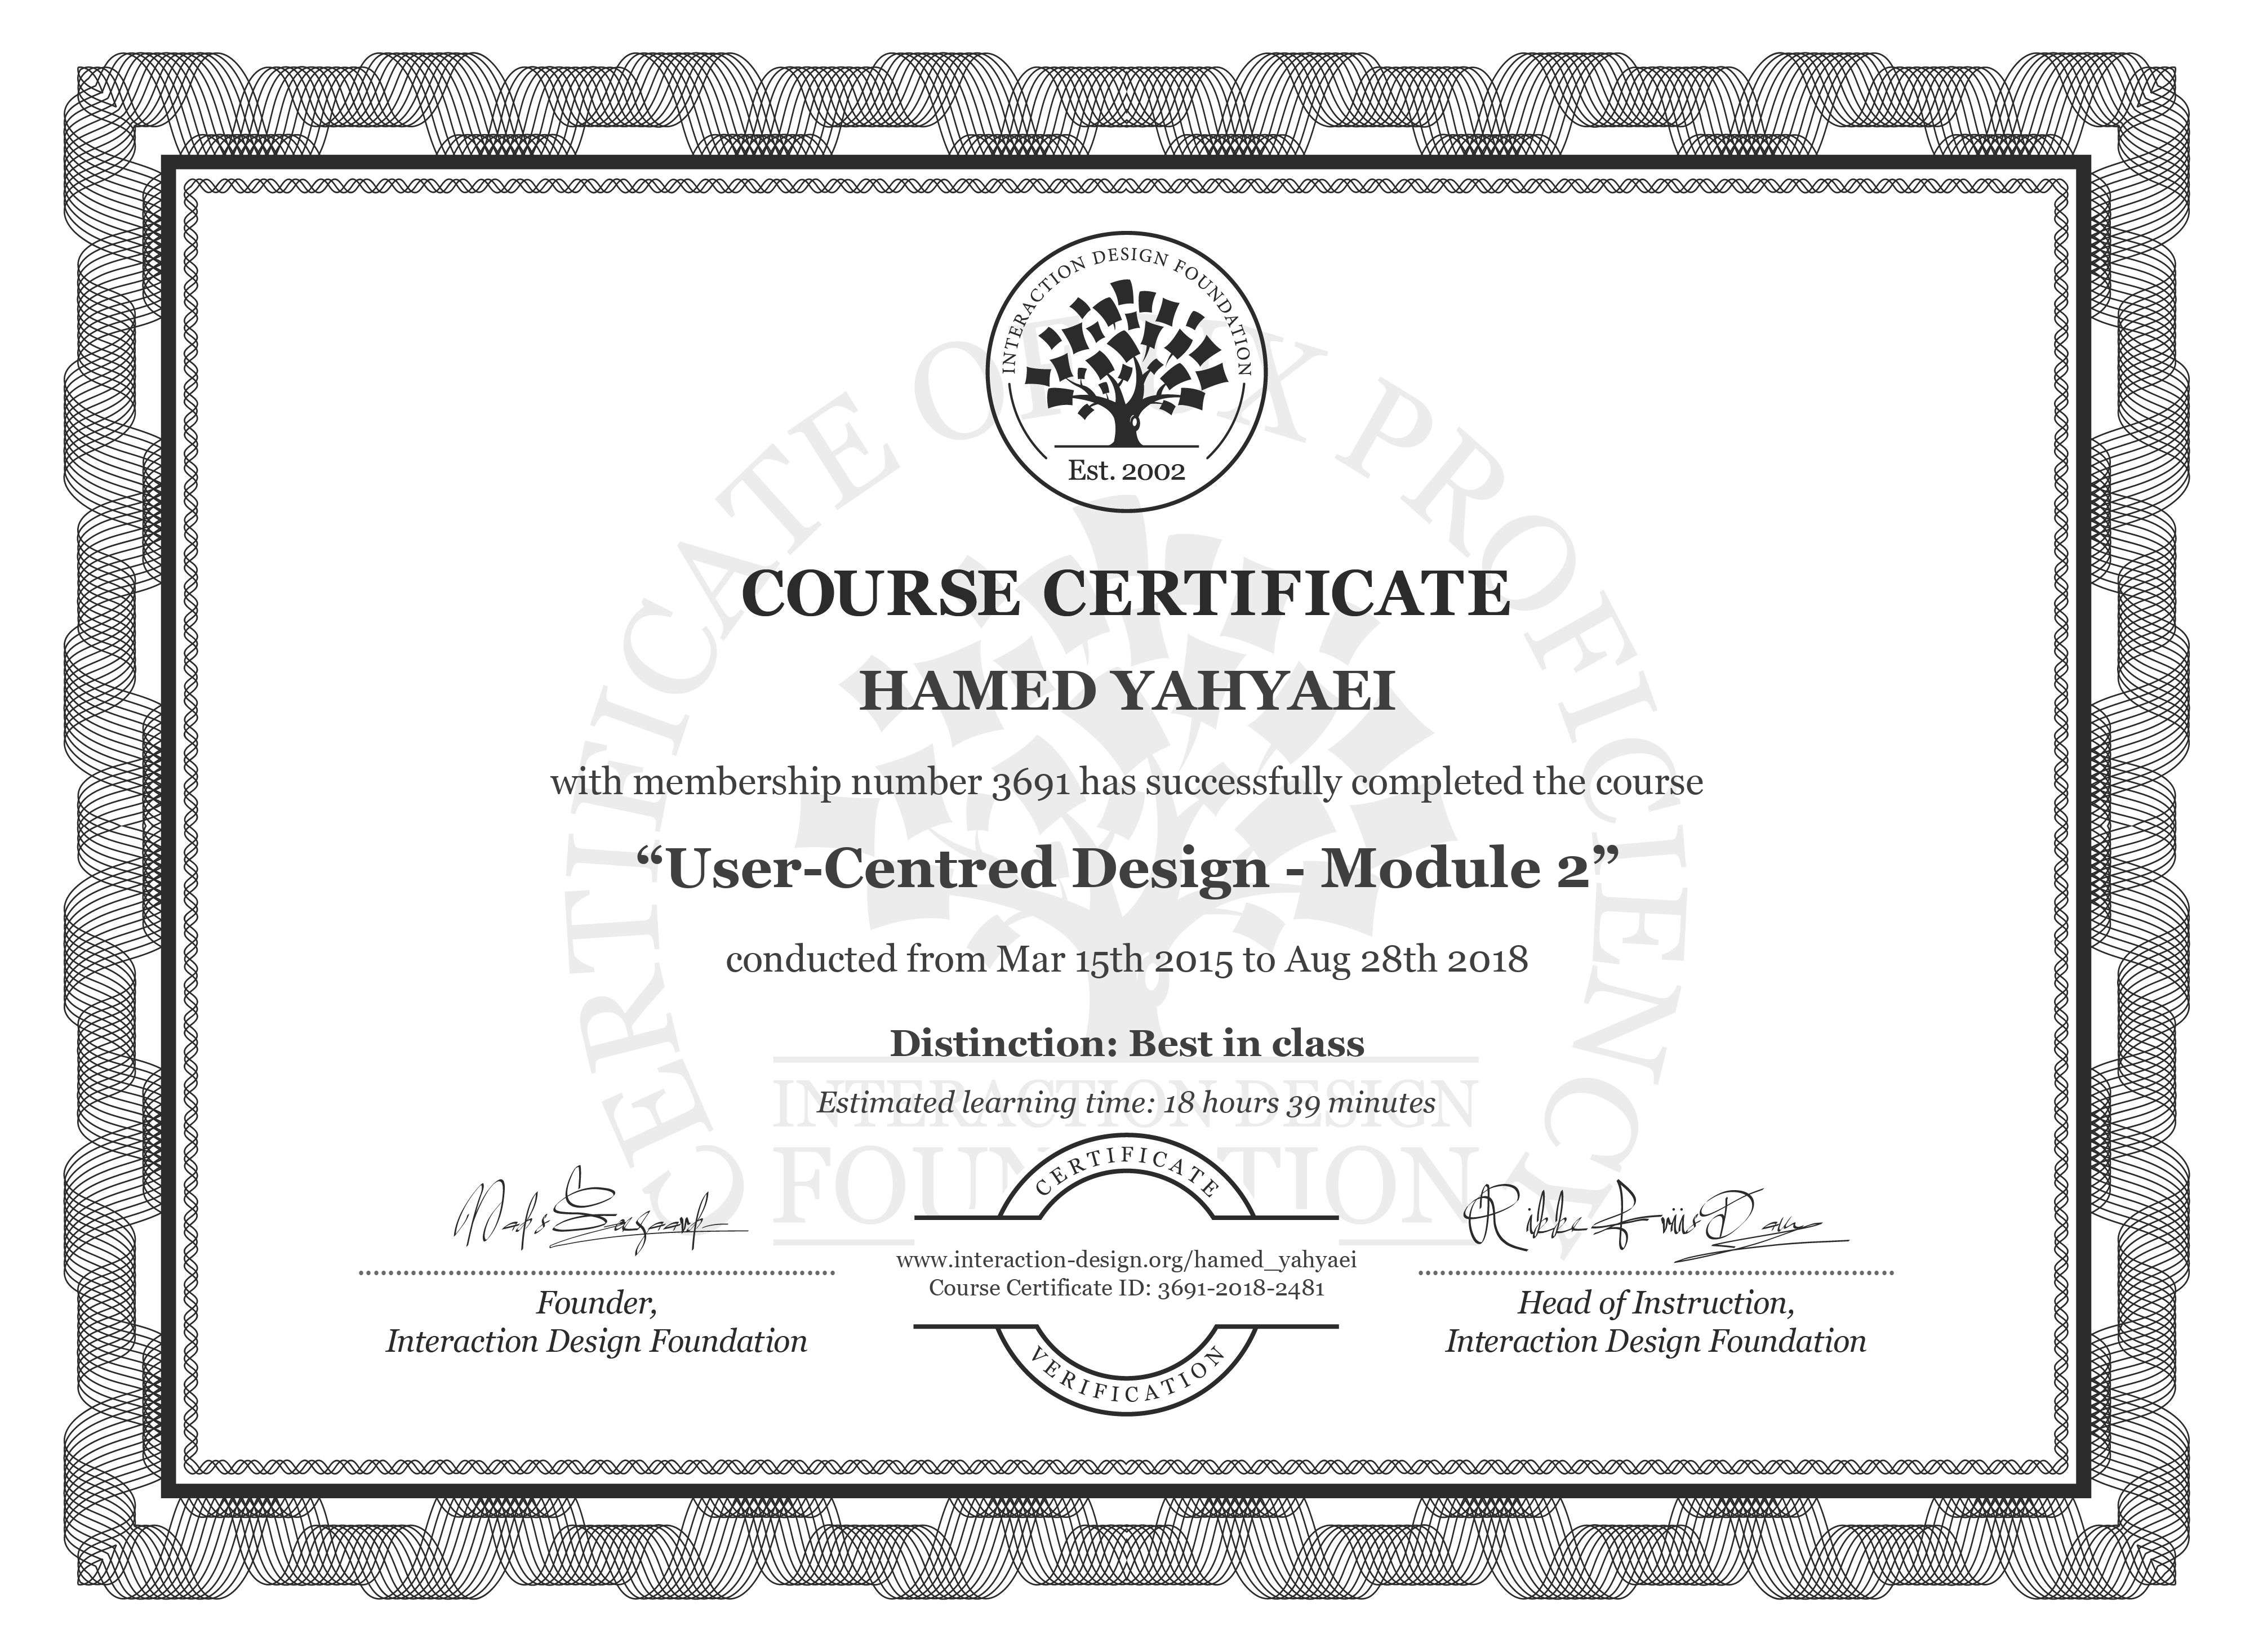 HAMED YAHYAEI's Course Certificate: User-Centred Design - Module 2